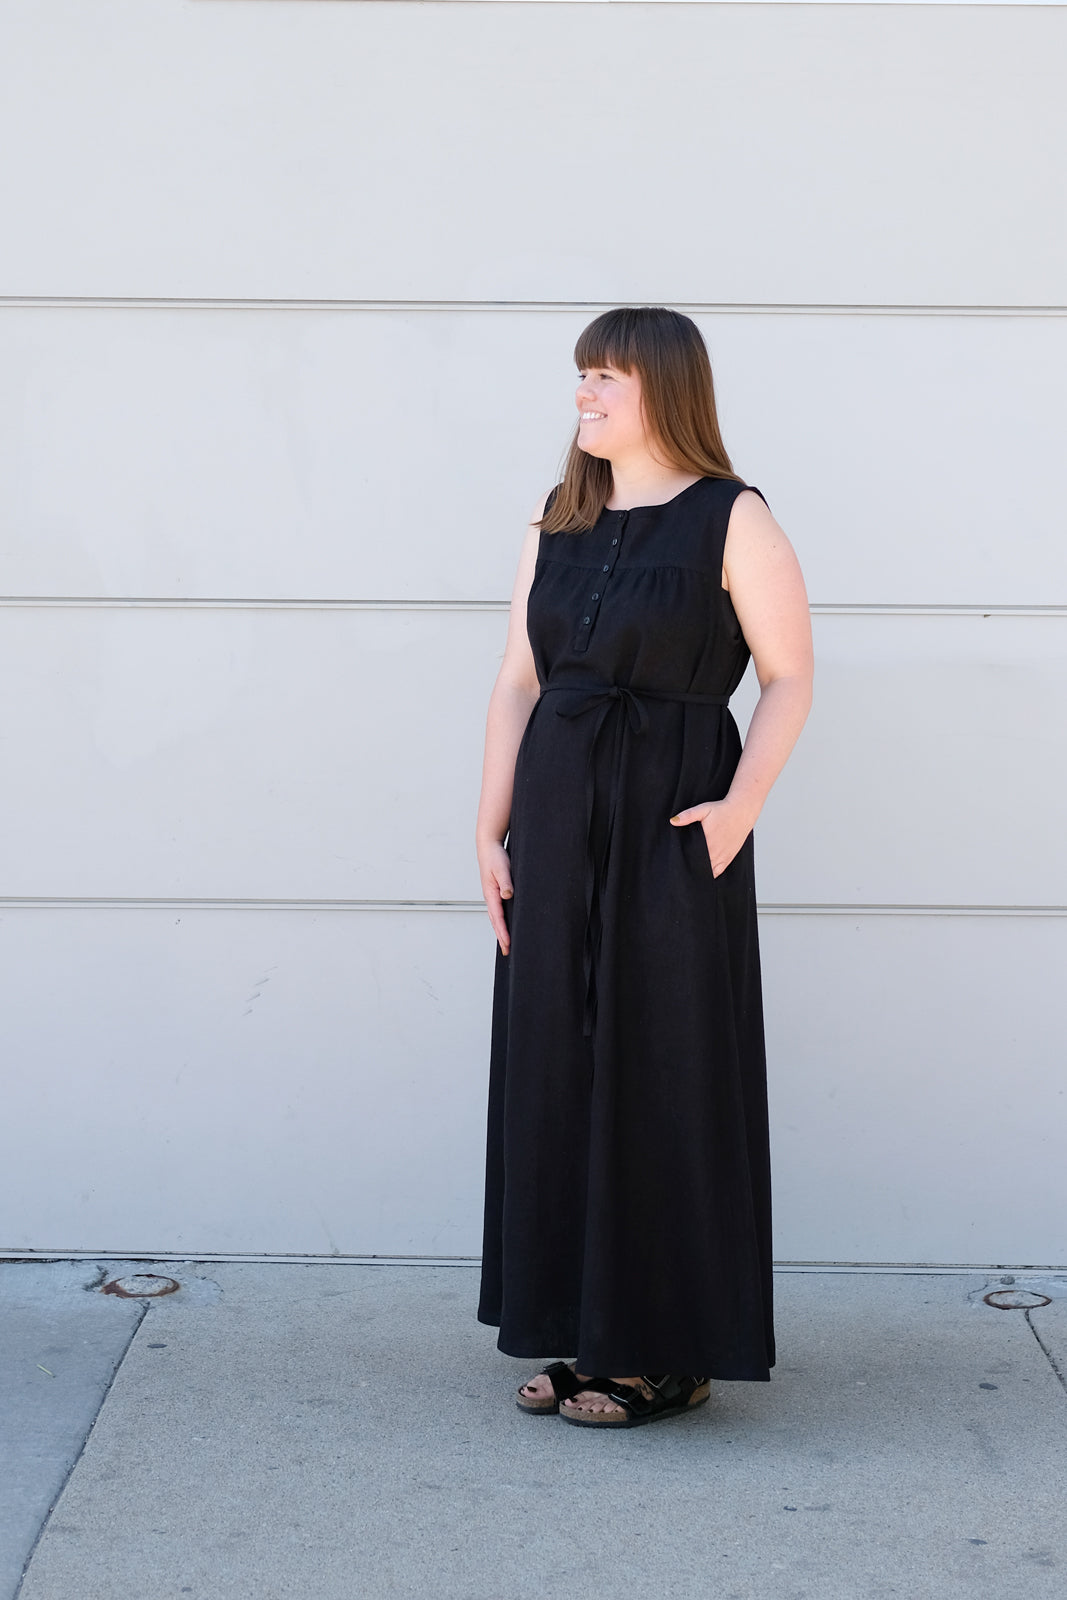 Kaylee's full length Black linen/cotton Maxi brome